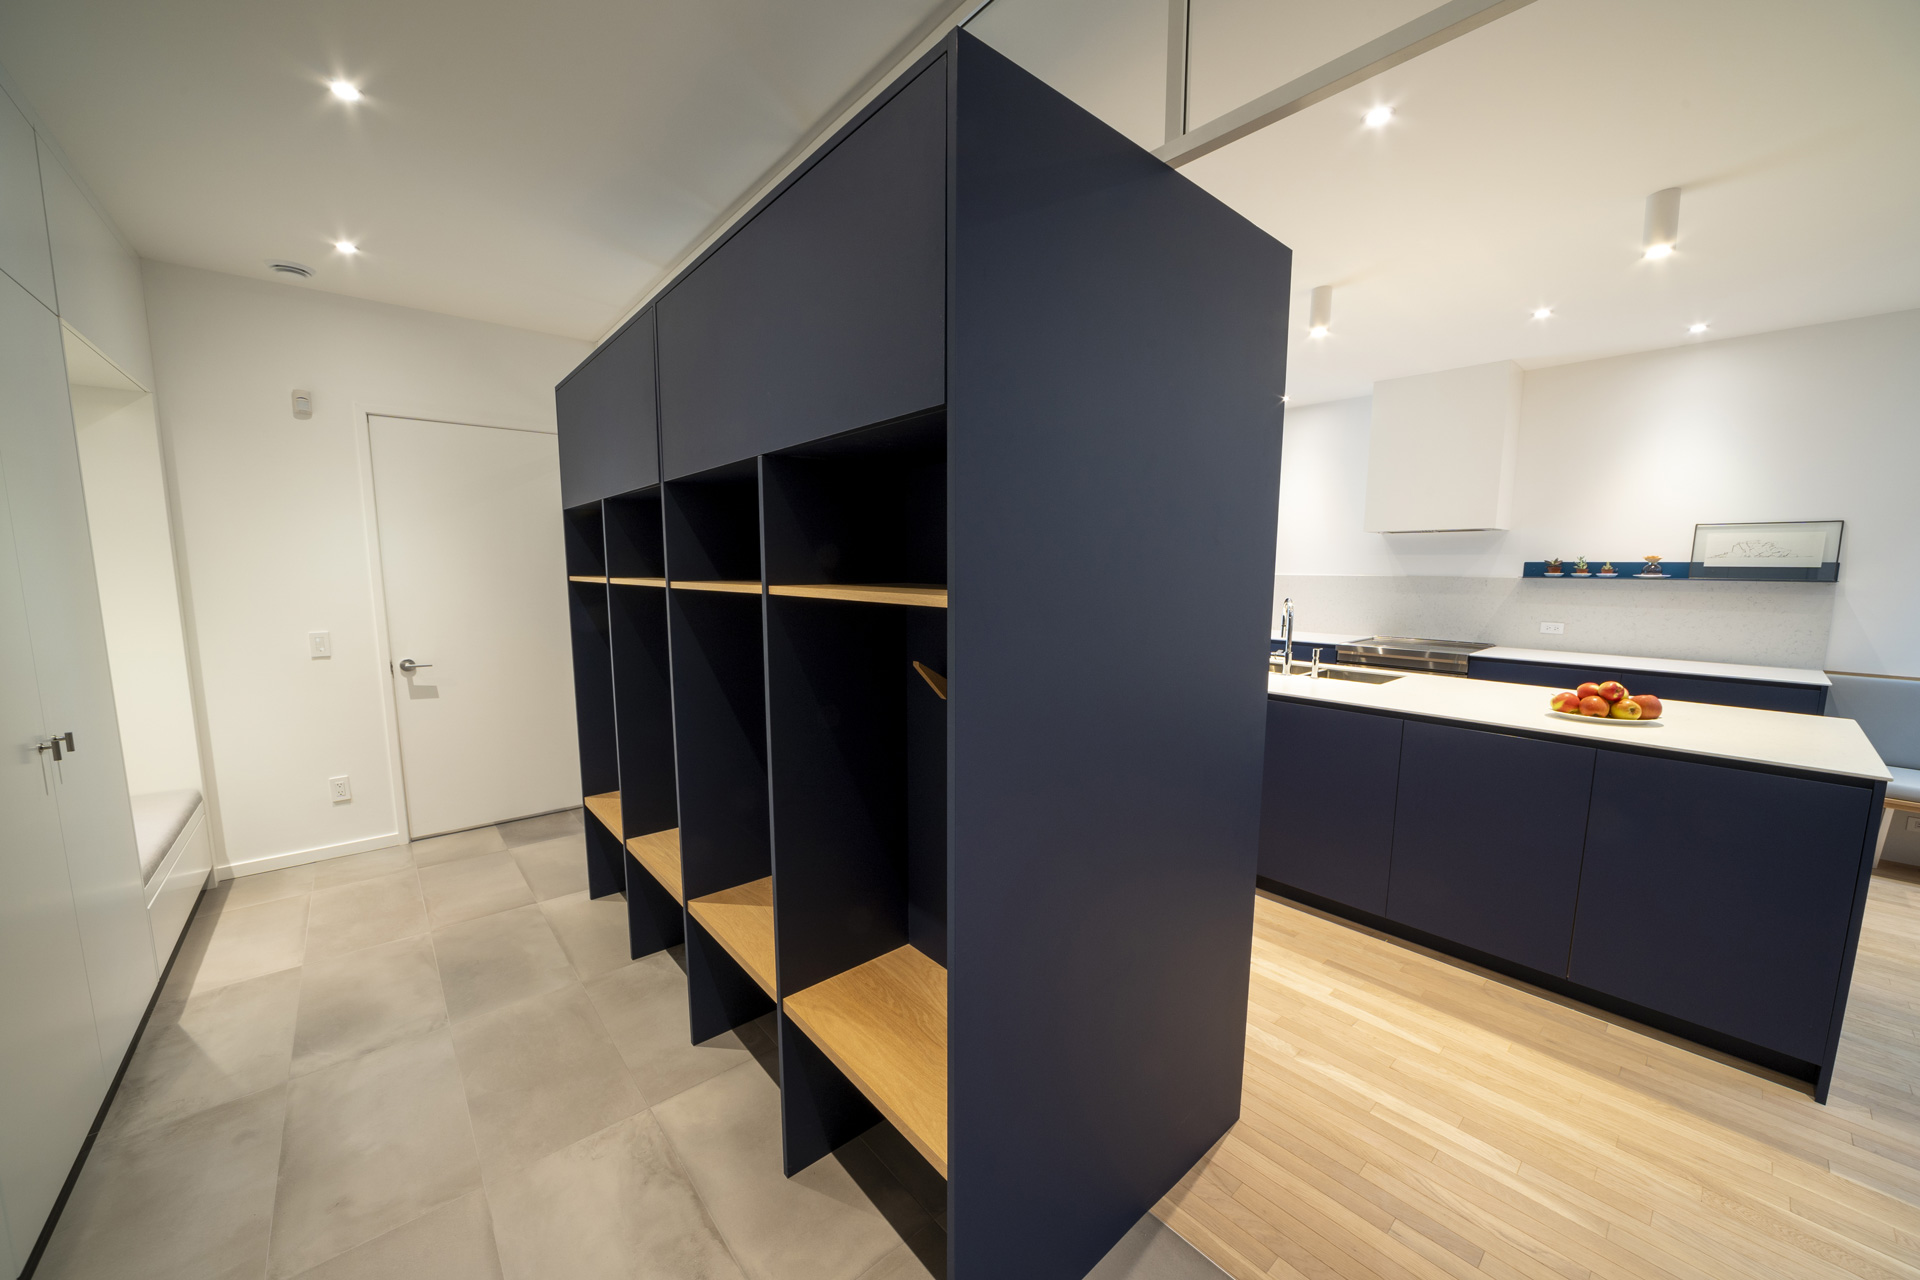 Design and renovation of a large entrance with dark colored boxes for optimized storage